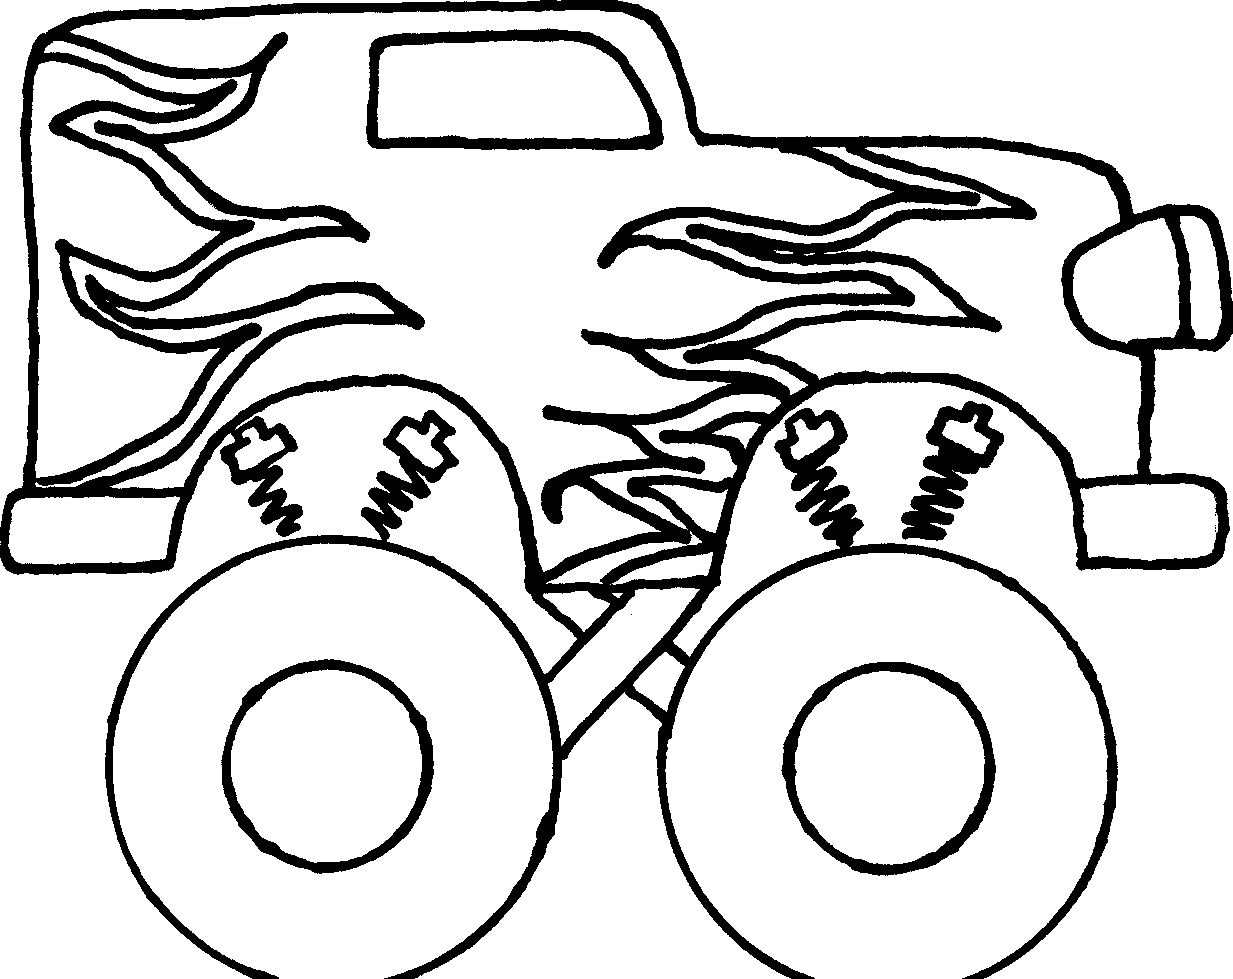 coloring truck clipart black and white free black and white fire truck clip art 20 free cliparts white clipart and black truck coloring